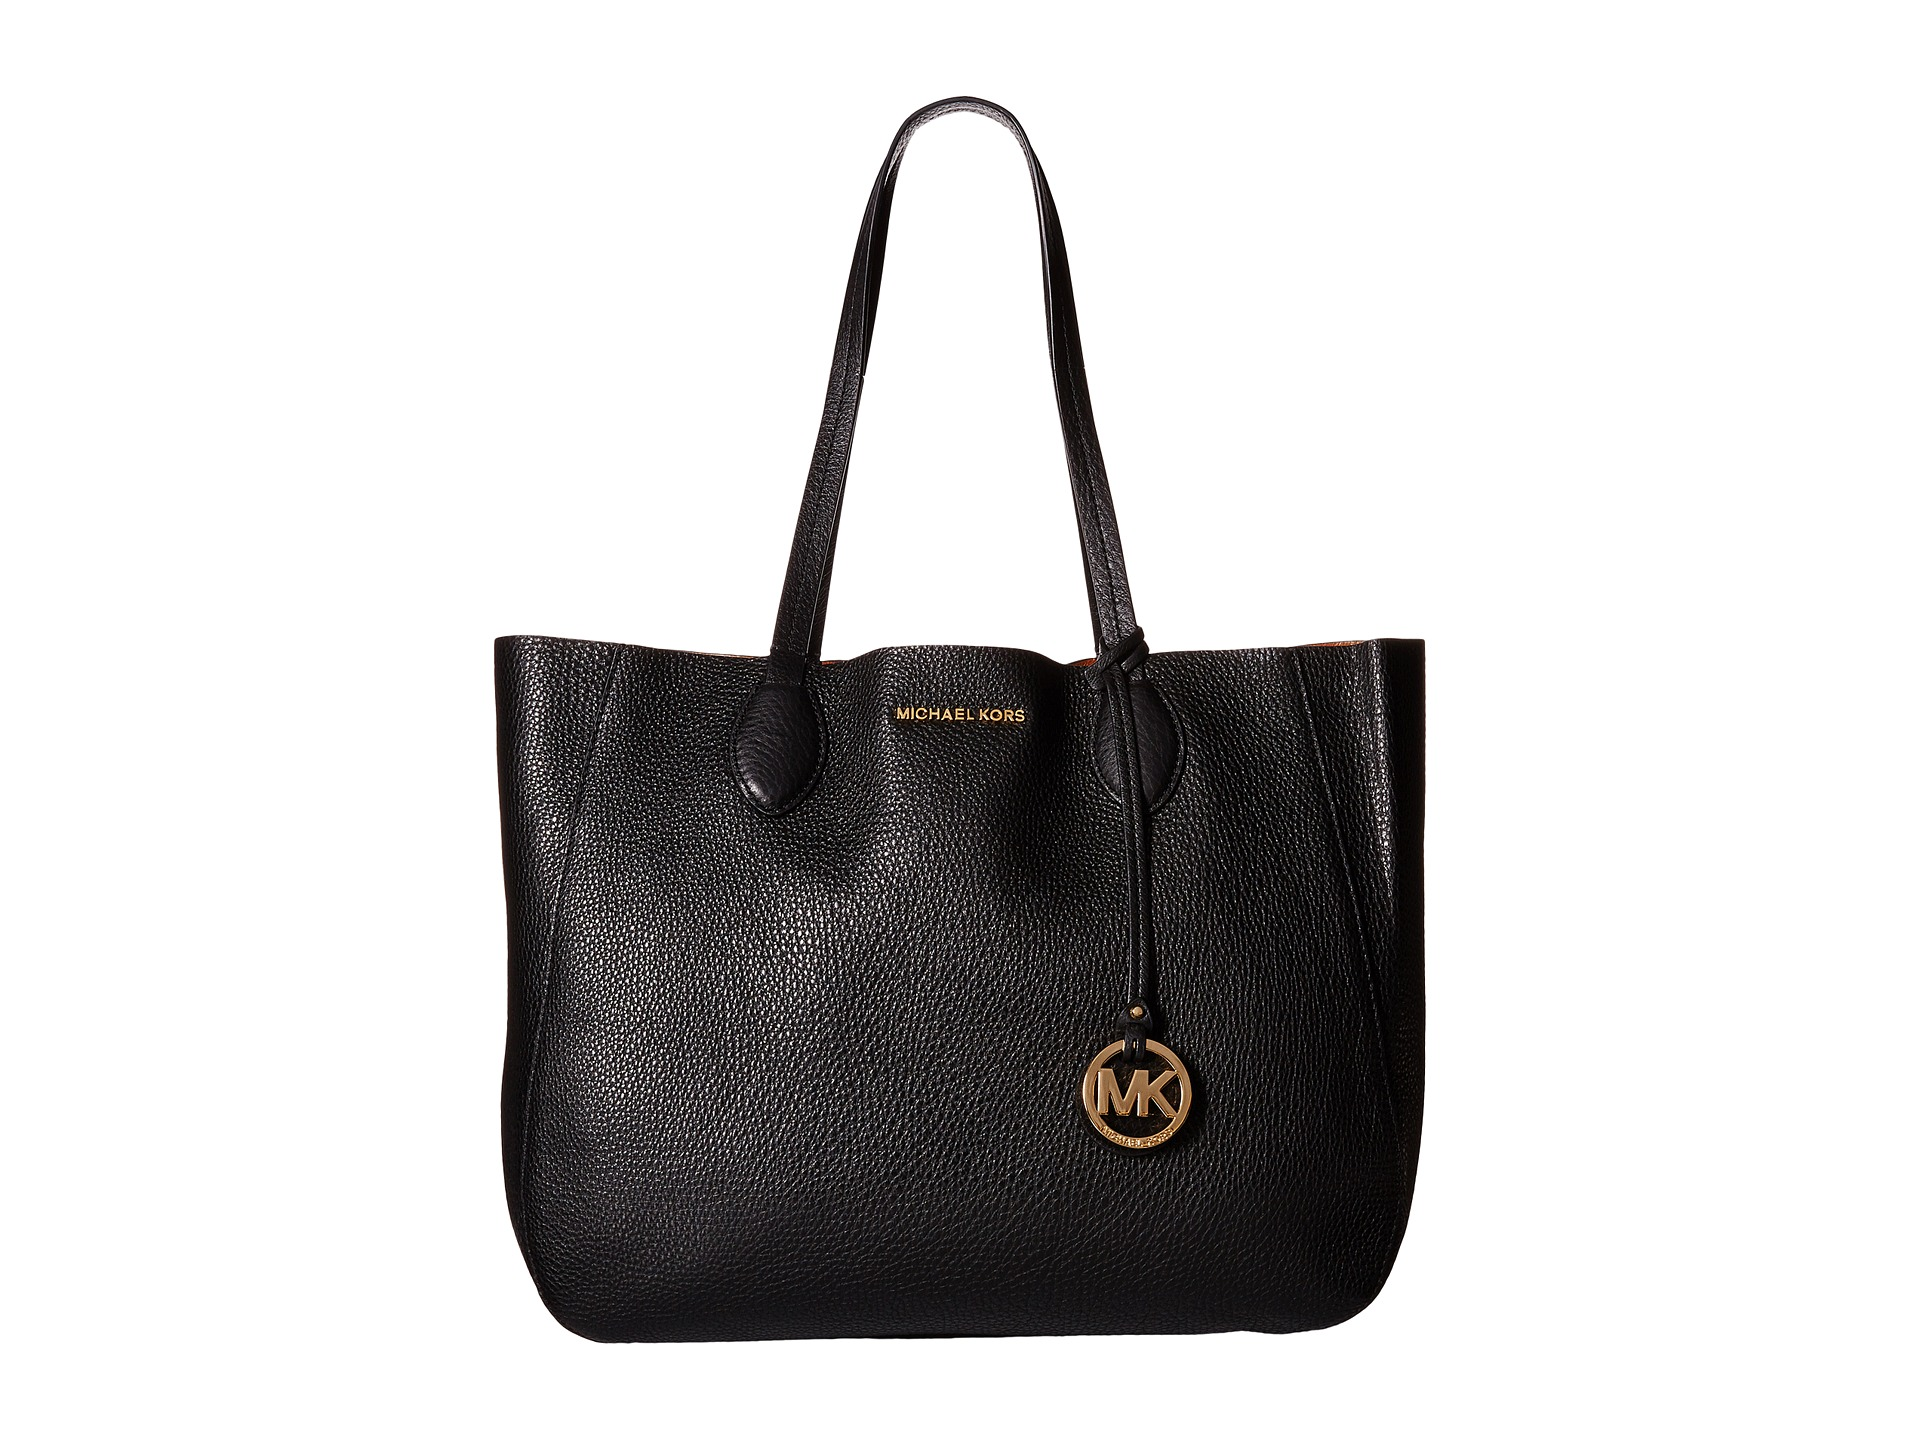 Michael Kors Bag Warranty Scale